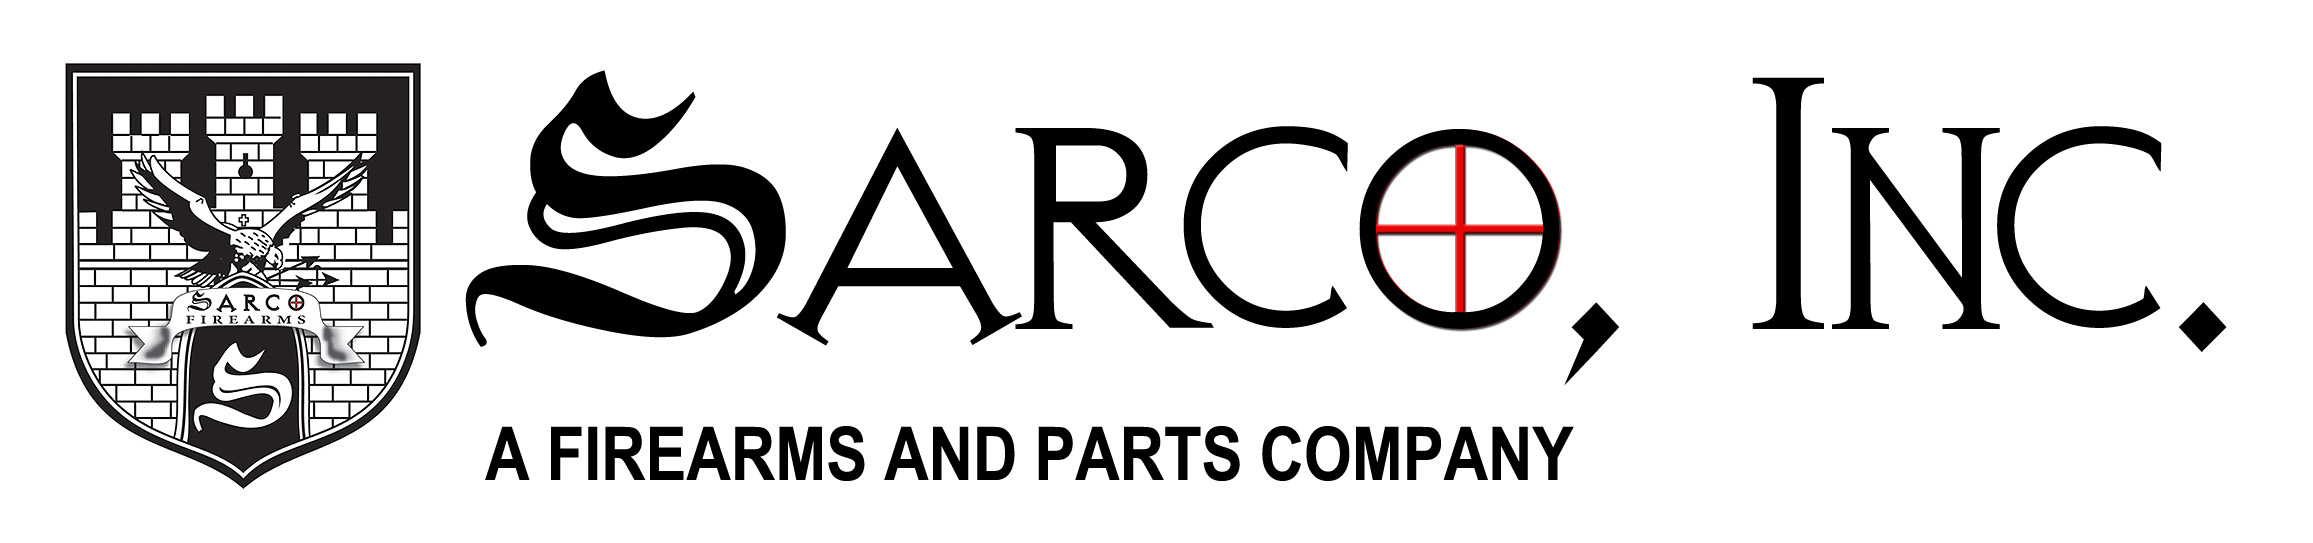 SARCO, Inc